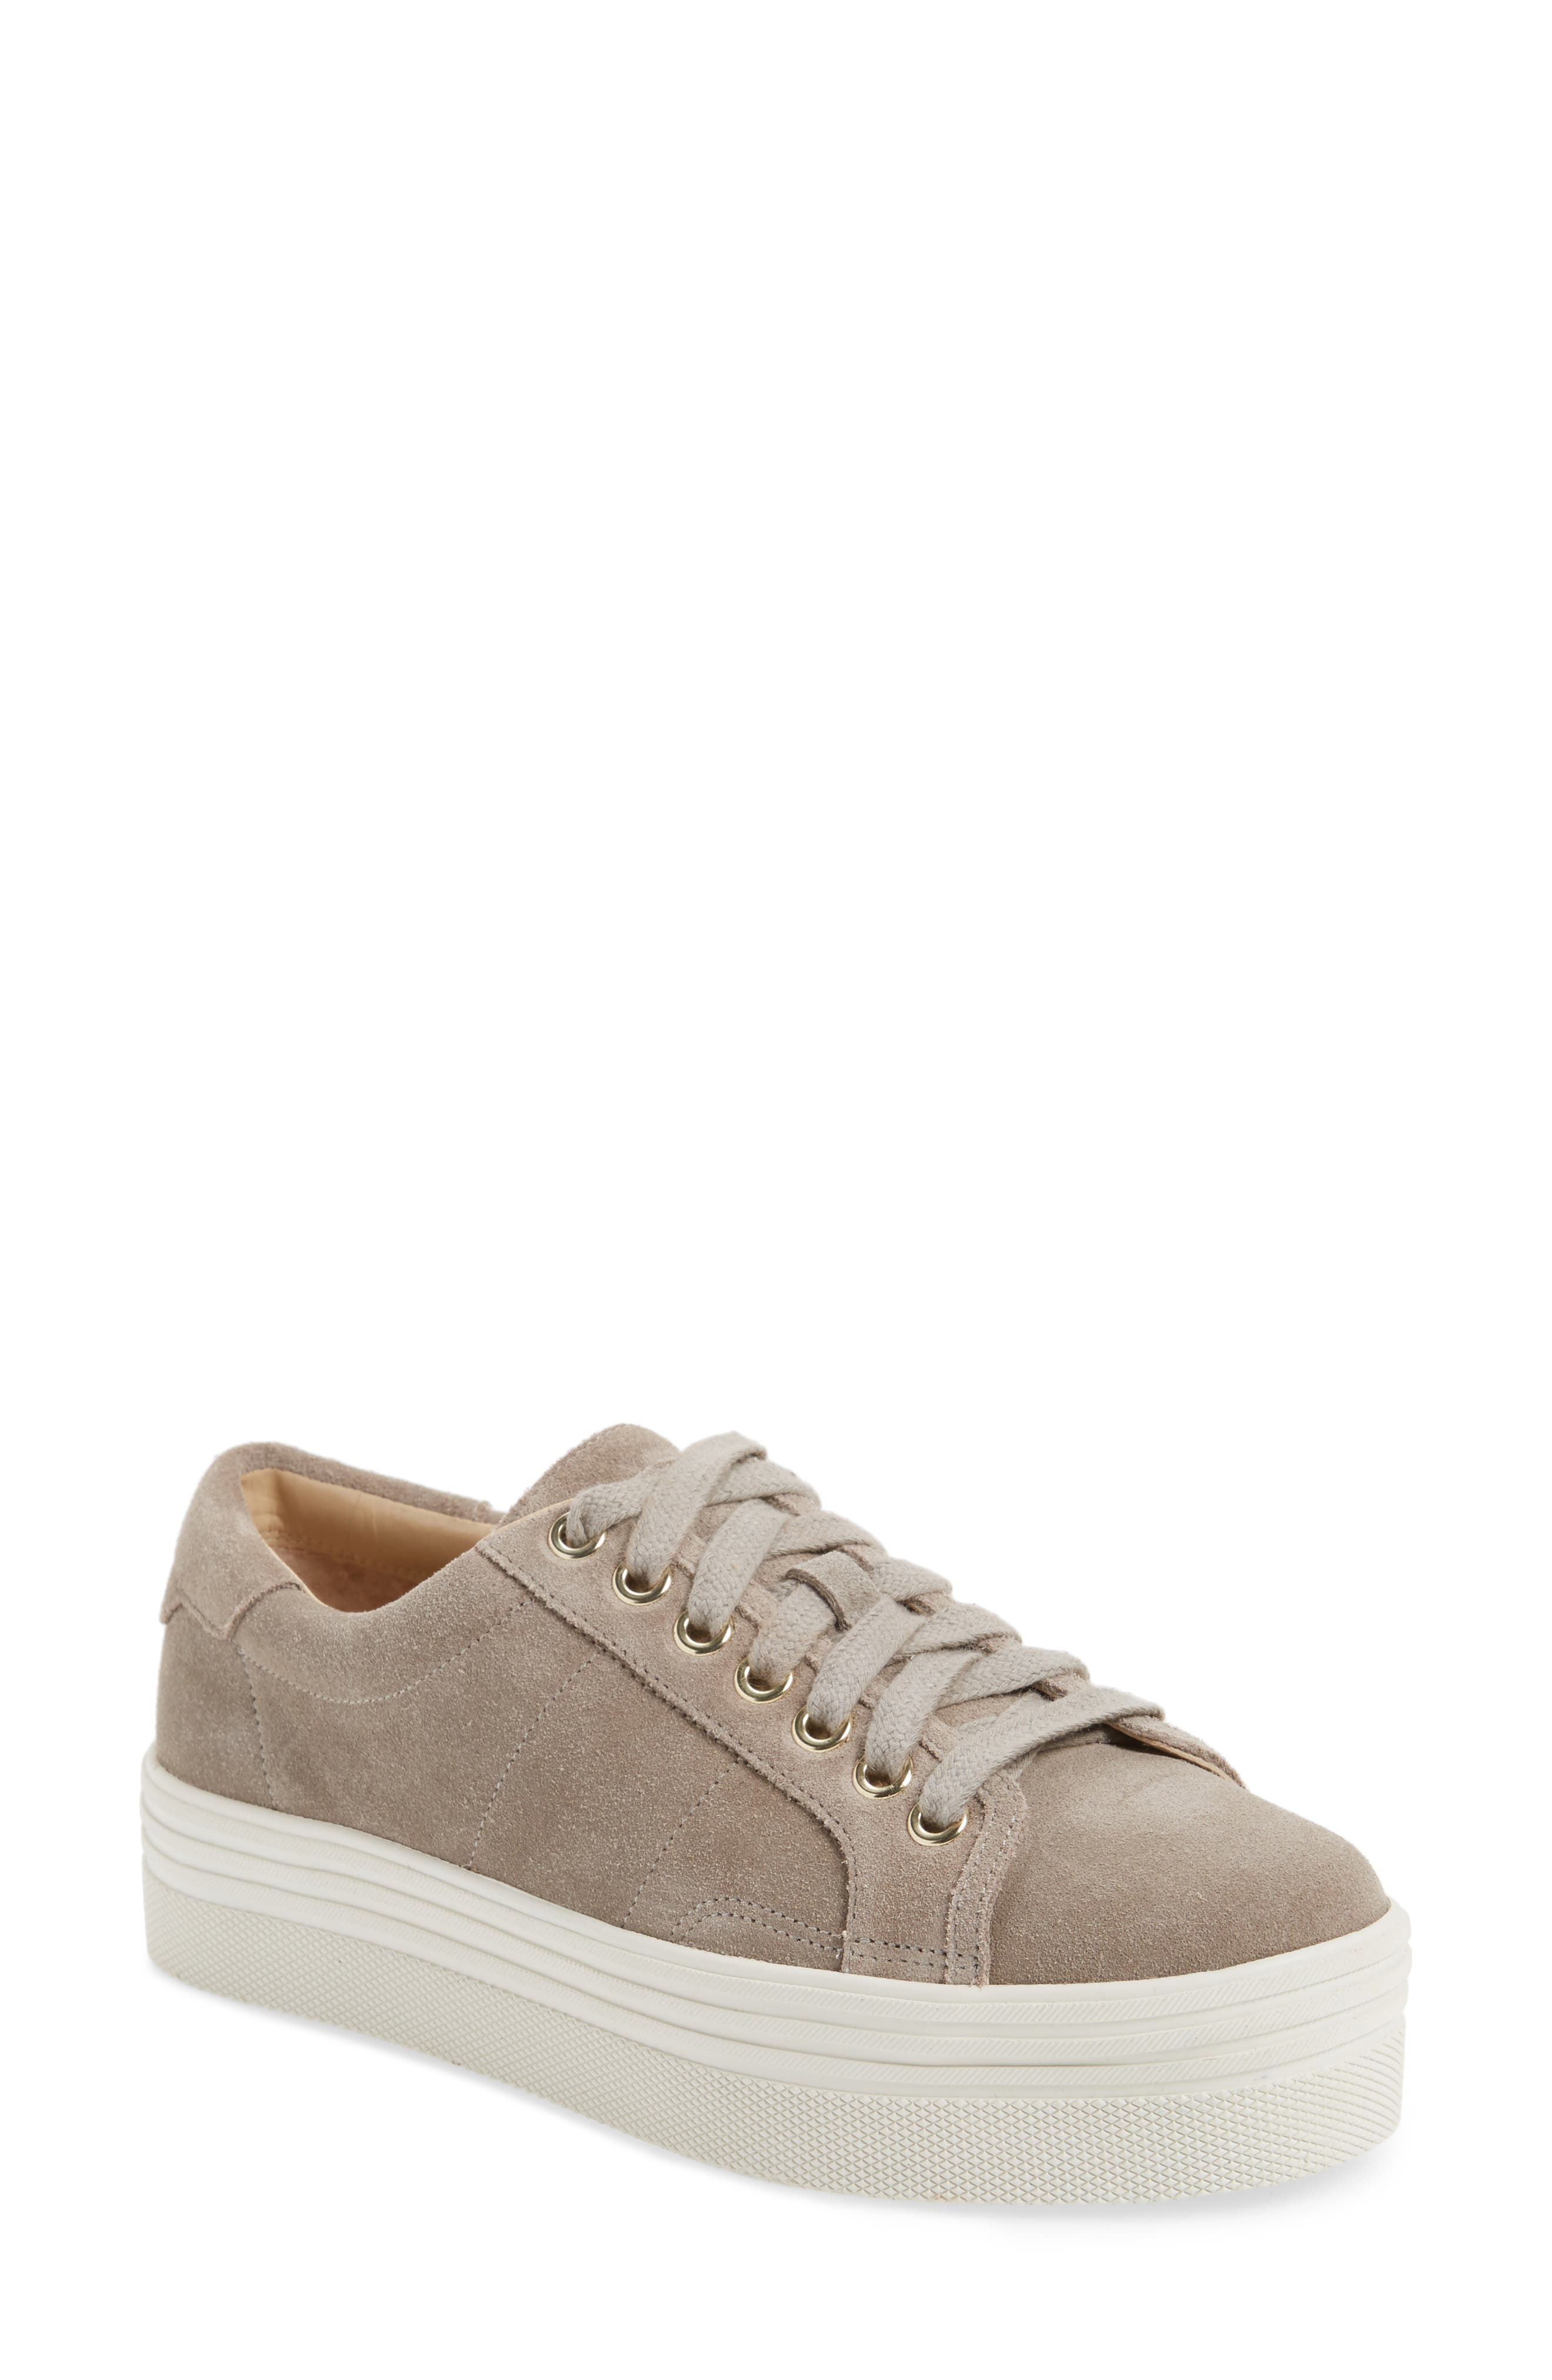 Emmy Platform Sneaker,                         Main,                         color,